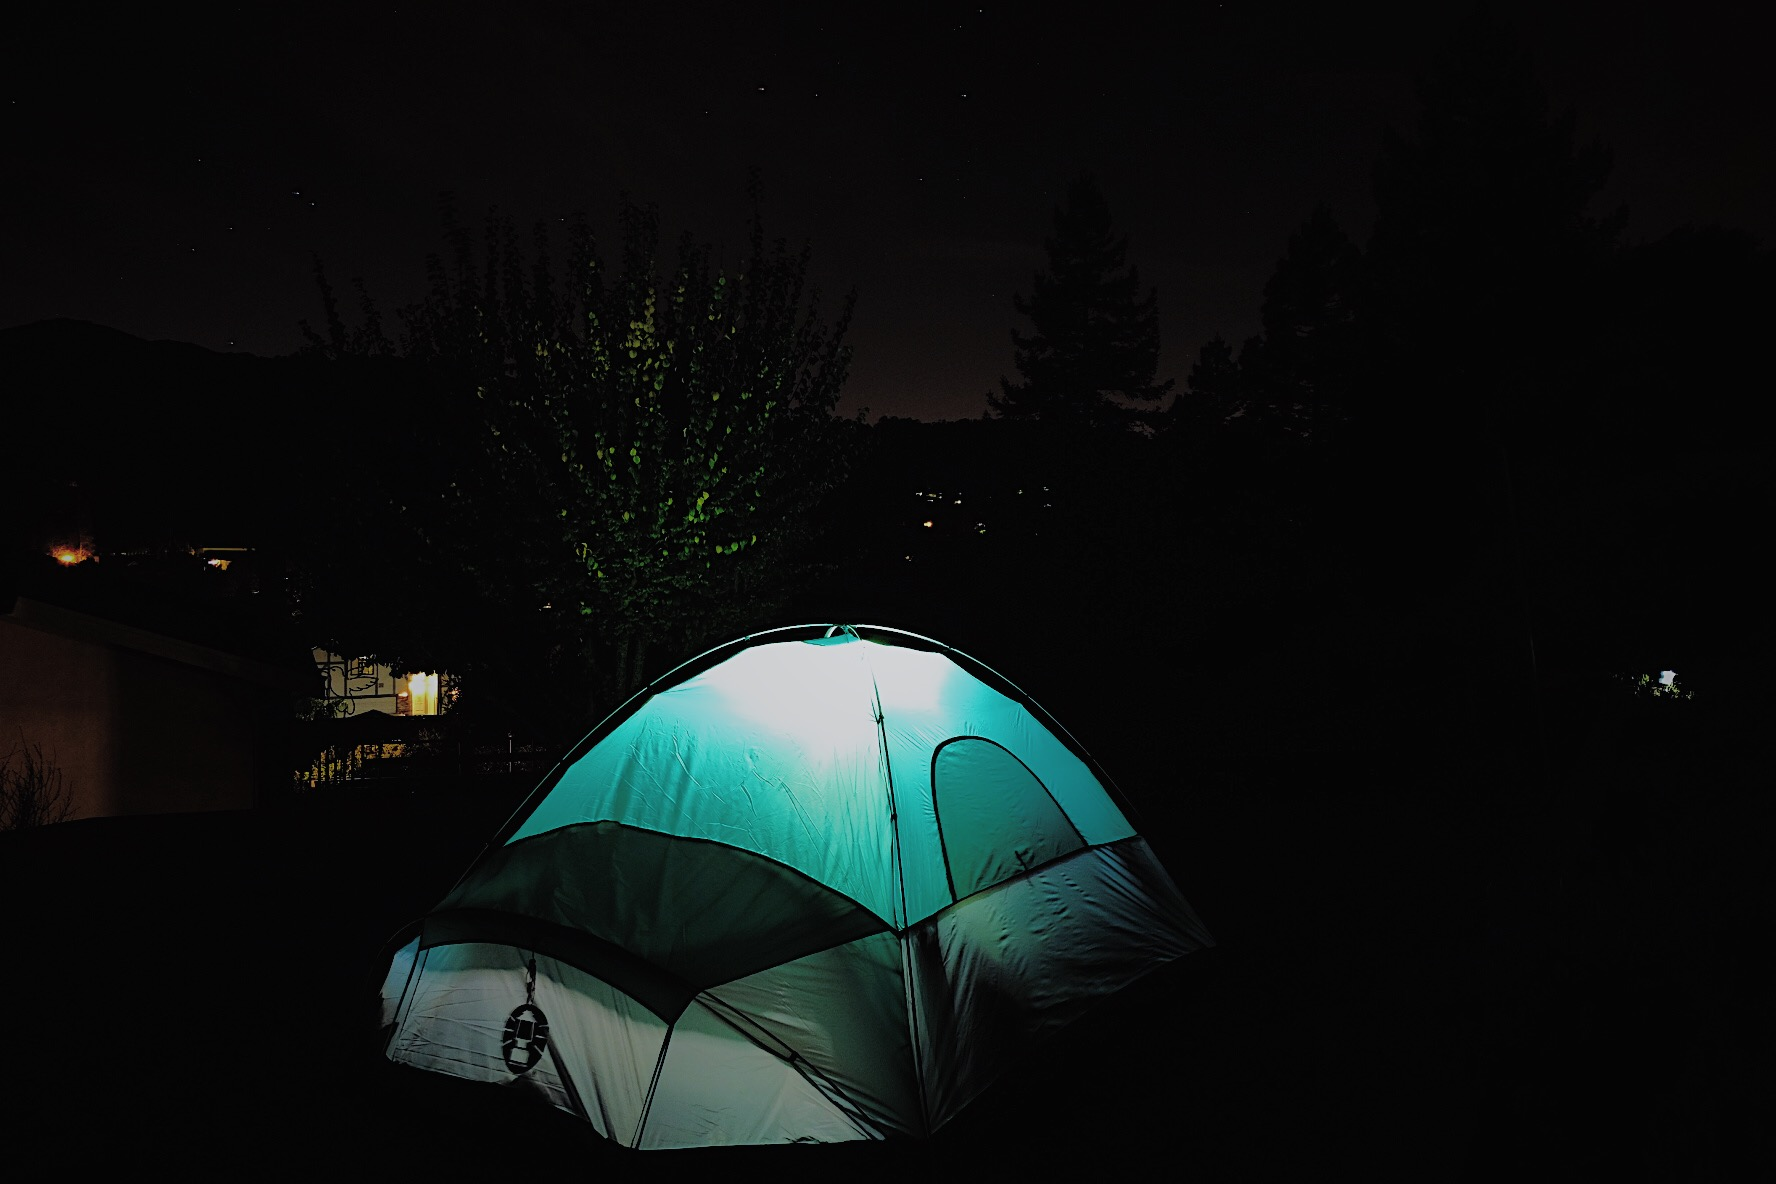 A night time photo of a tent illuminated from inside.